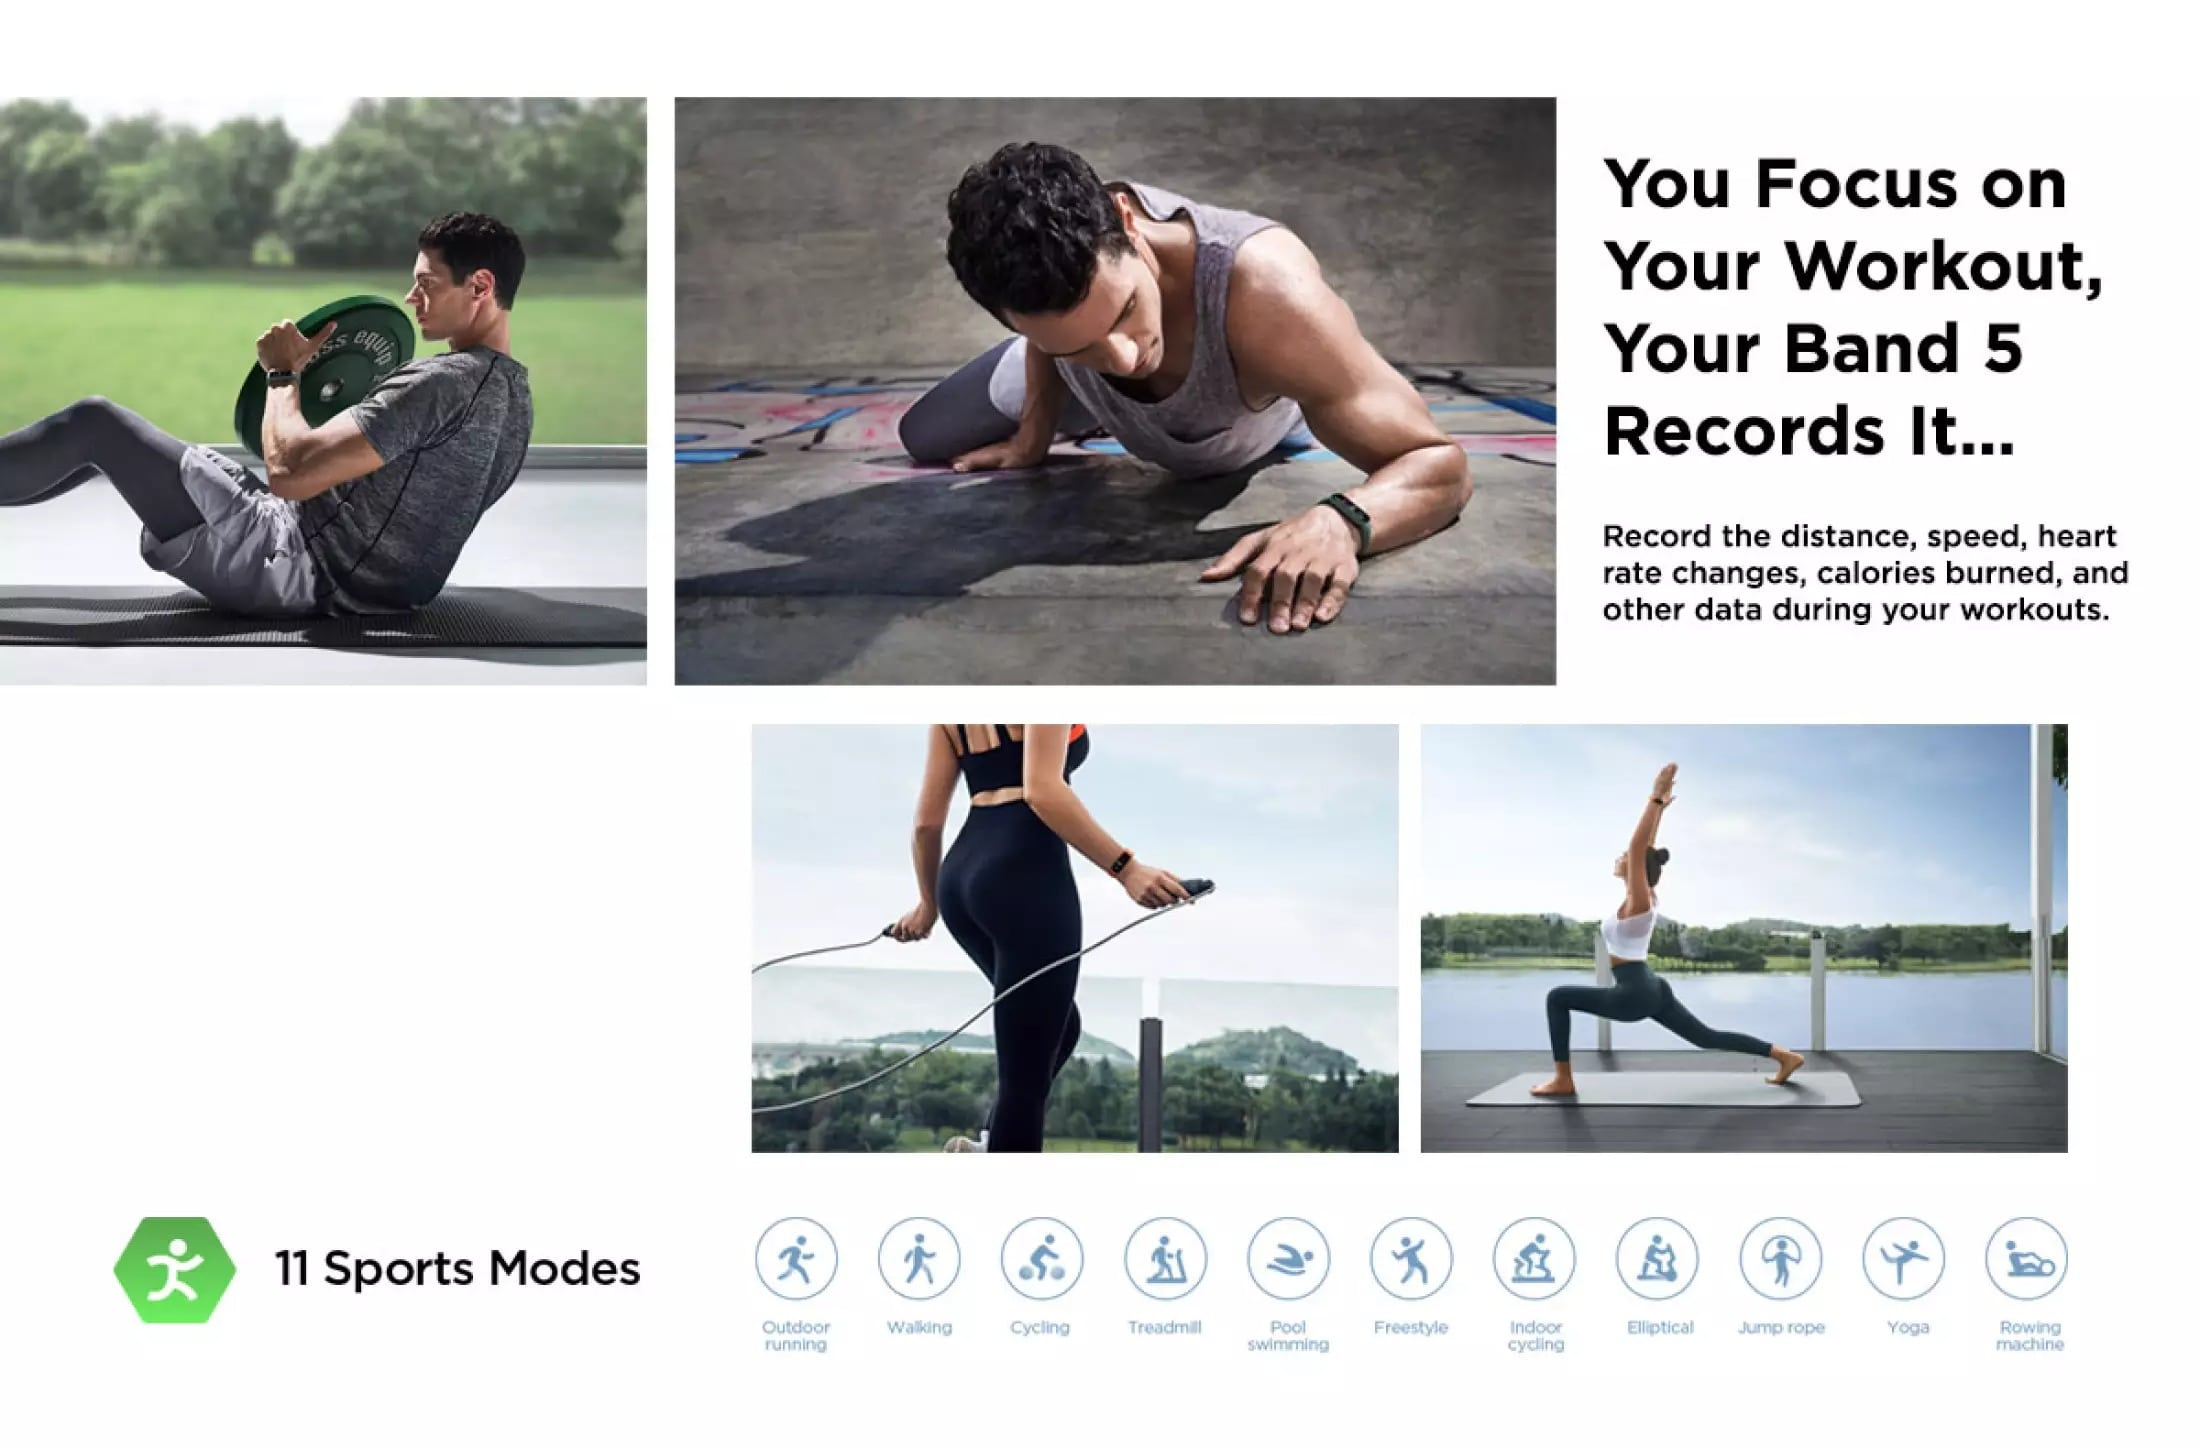 Amazfit Band 5 Records Your Workout